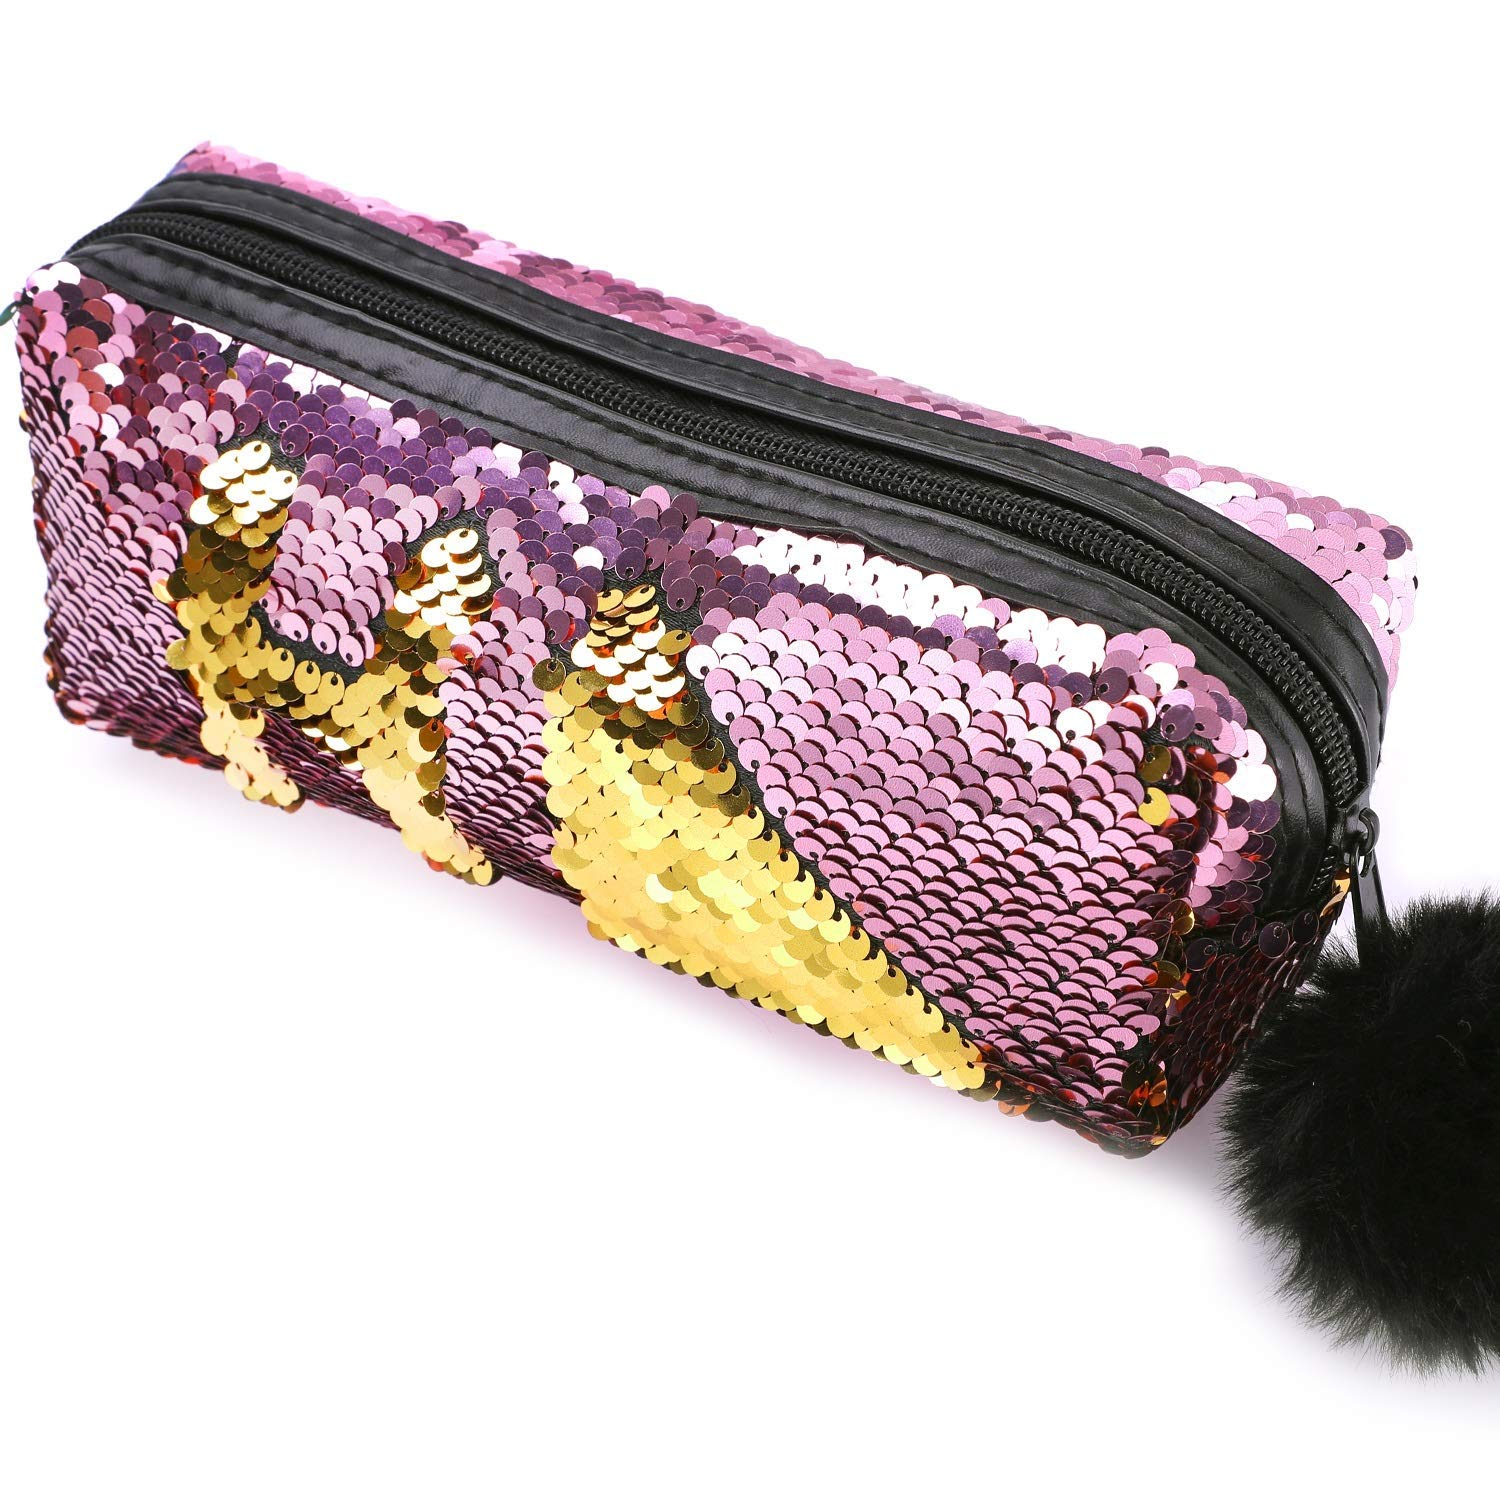 Phogary Glitter Cosmetic Bag Mermaid Spiral Reversible Sequins Portable Double Color Students Pencil Case for Girls Women Handbag Purse Make Up Pouch with Pompon Zip Closure